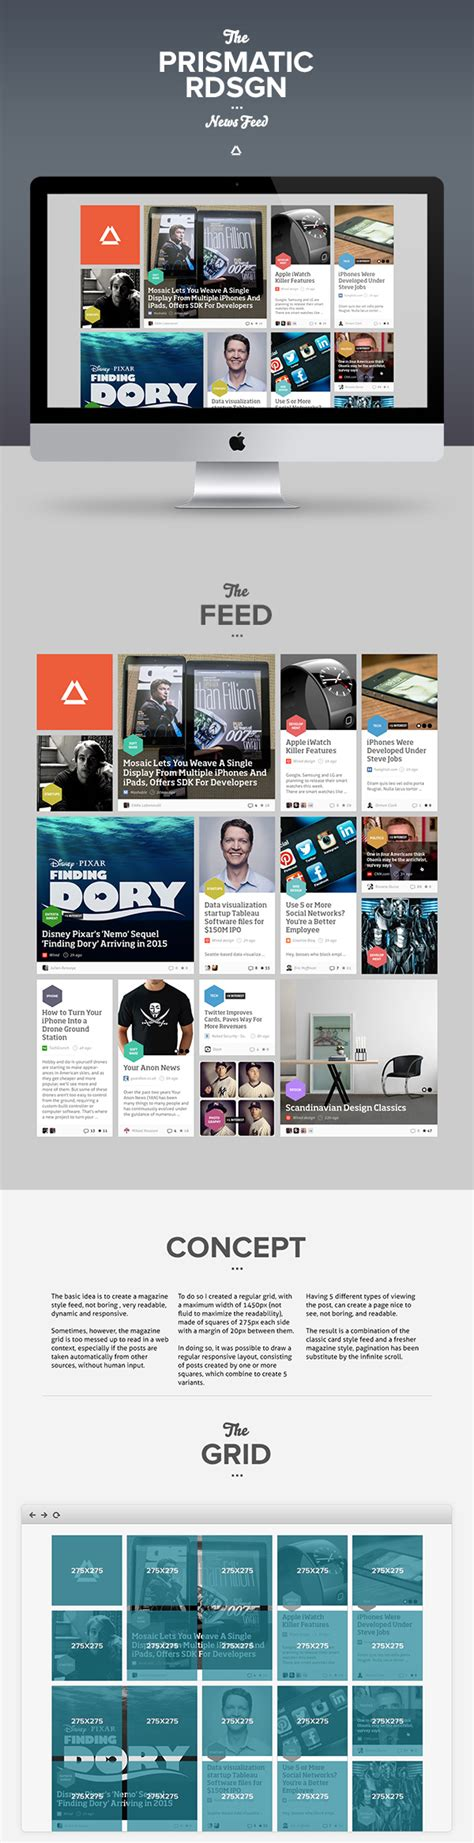 web layout behance prismatic newsfeed concept redesign on inspirationde